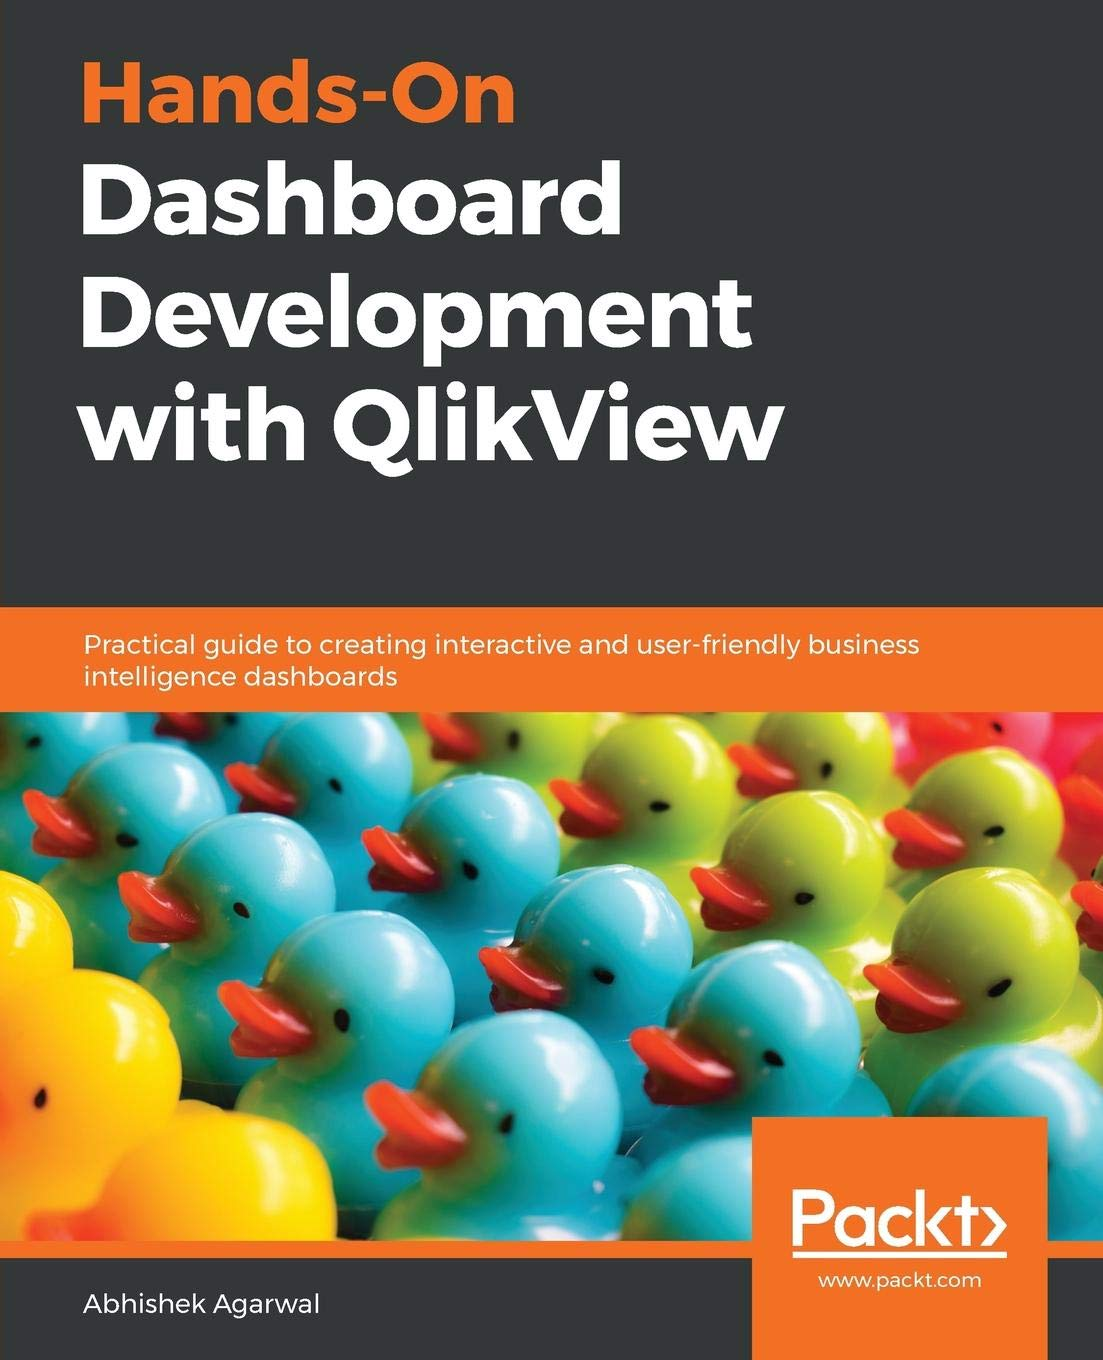 Hands-On Dashboard Development with QlikView: Practical guide to creating interactive and user-friendly business intelligence dashboards